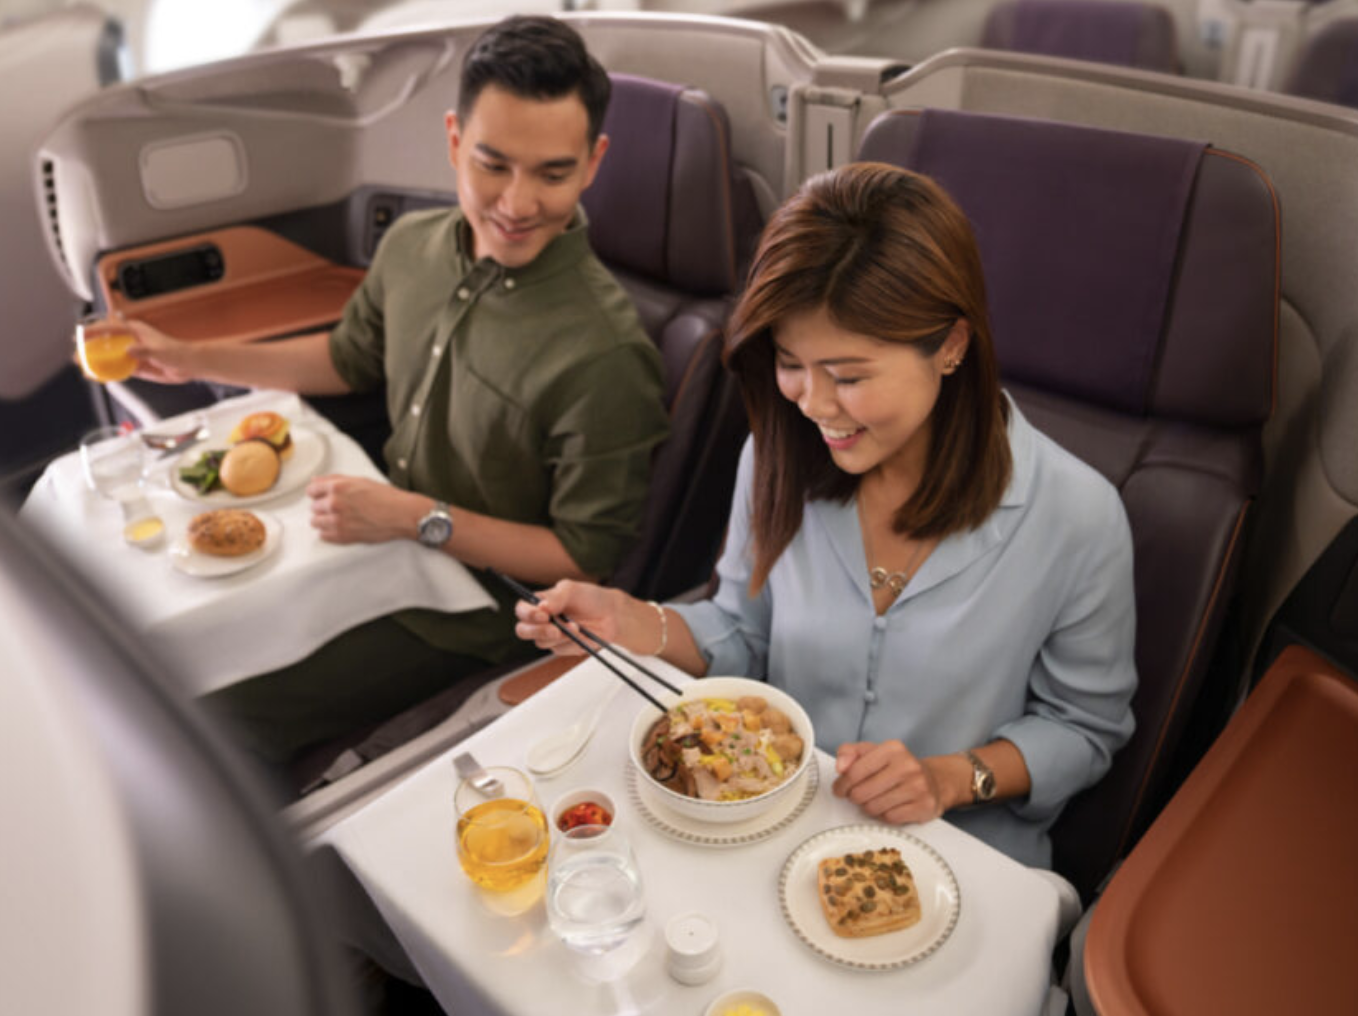 Airbus A380 Restaurant Tickets Sold Out in Just Half an Hour – Singapore Airlines